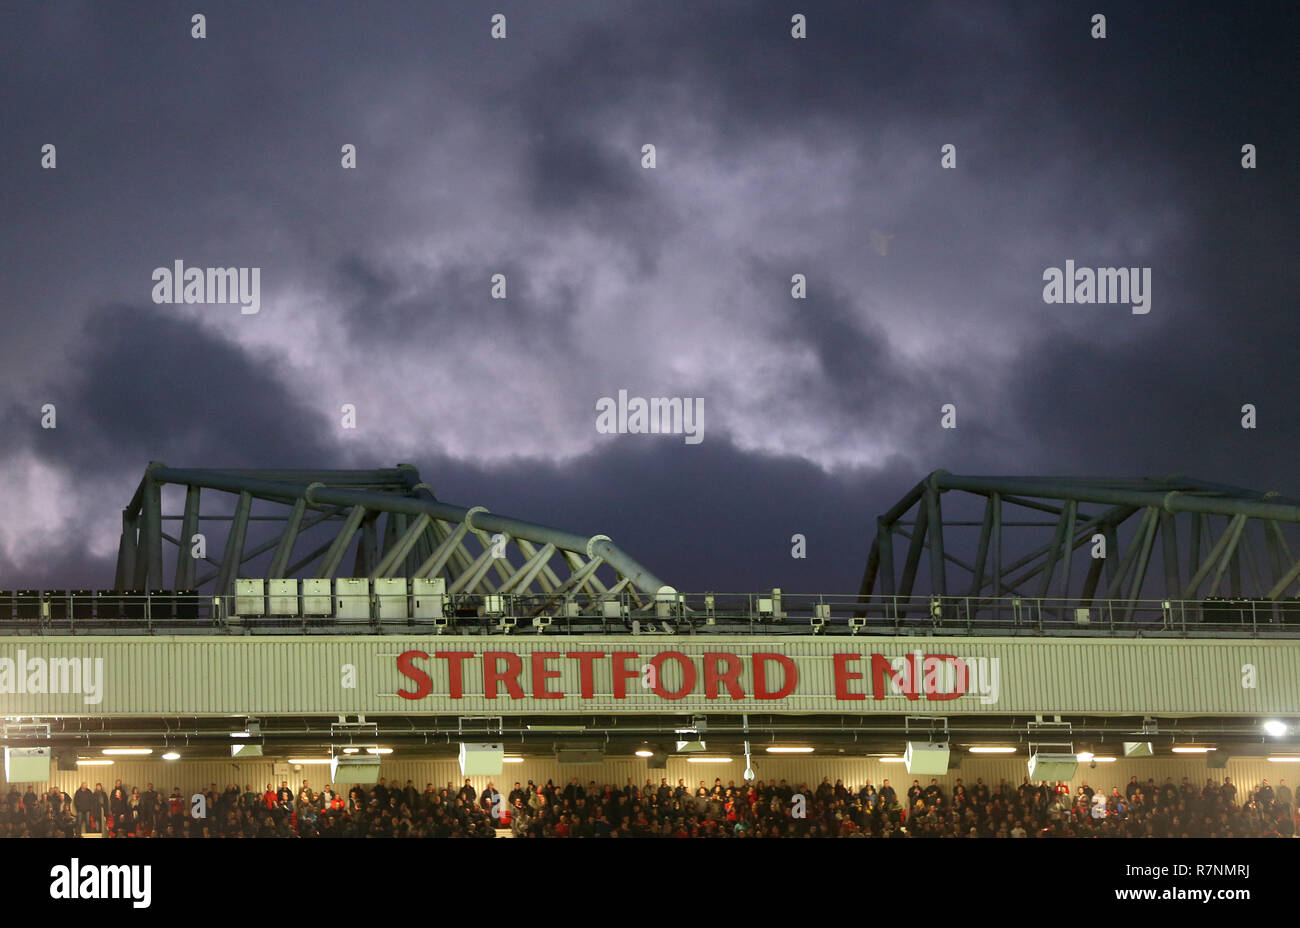 General view of fans in the Stretford End during the match - Stock Image